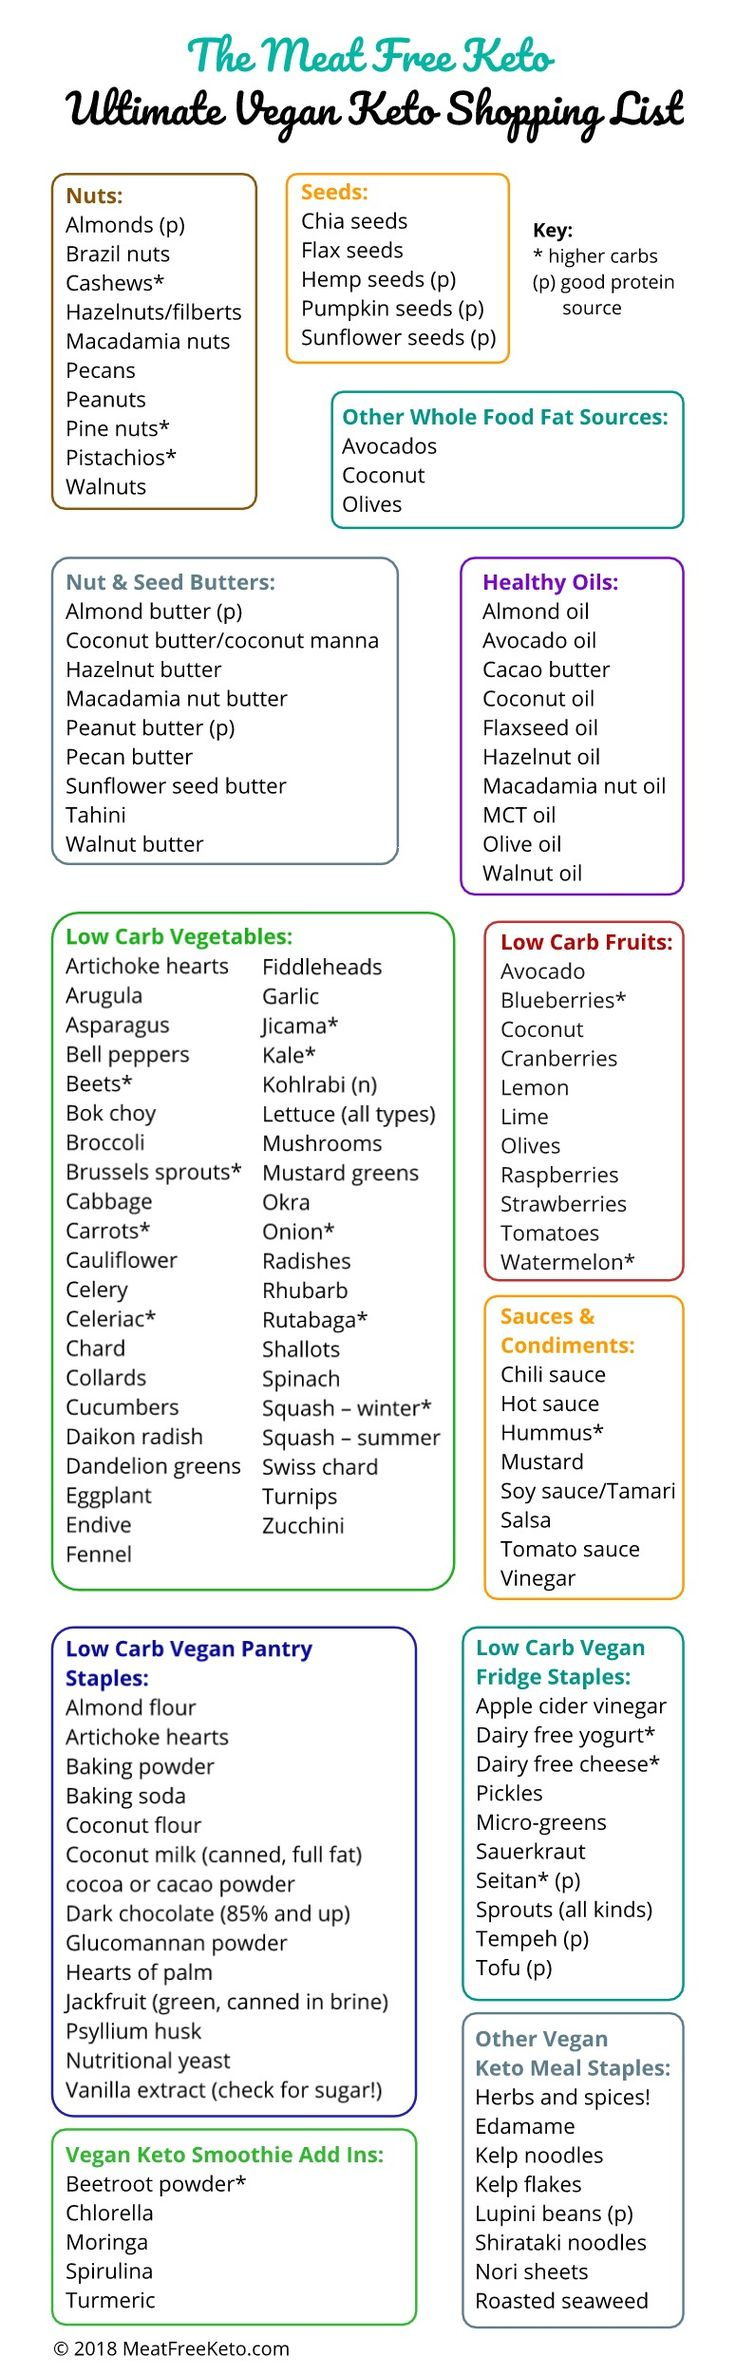 The Ultimate Vegan Keto Shopping List   Meat Free Keto - This comprehensive shop...